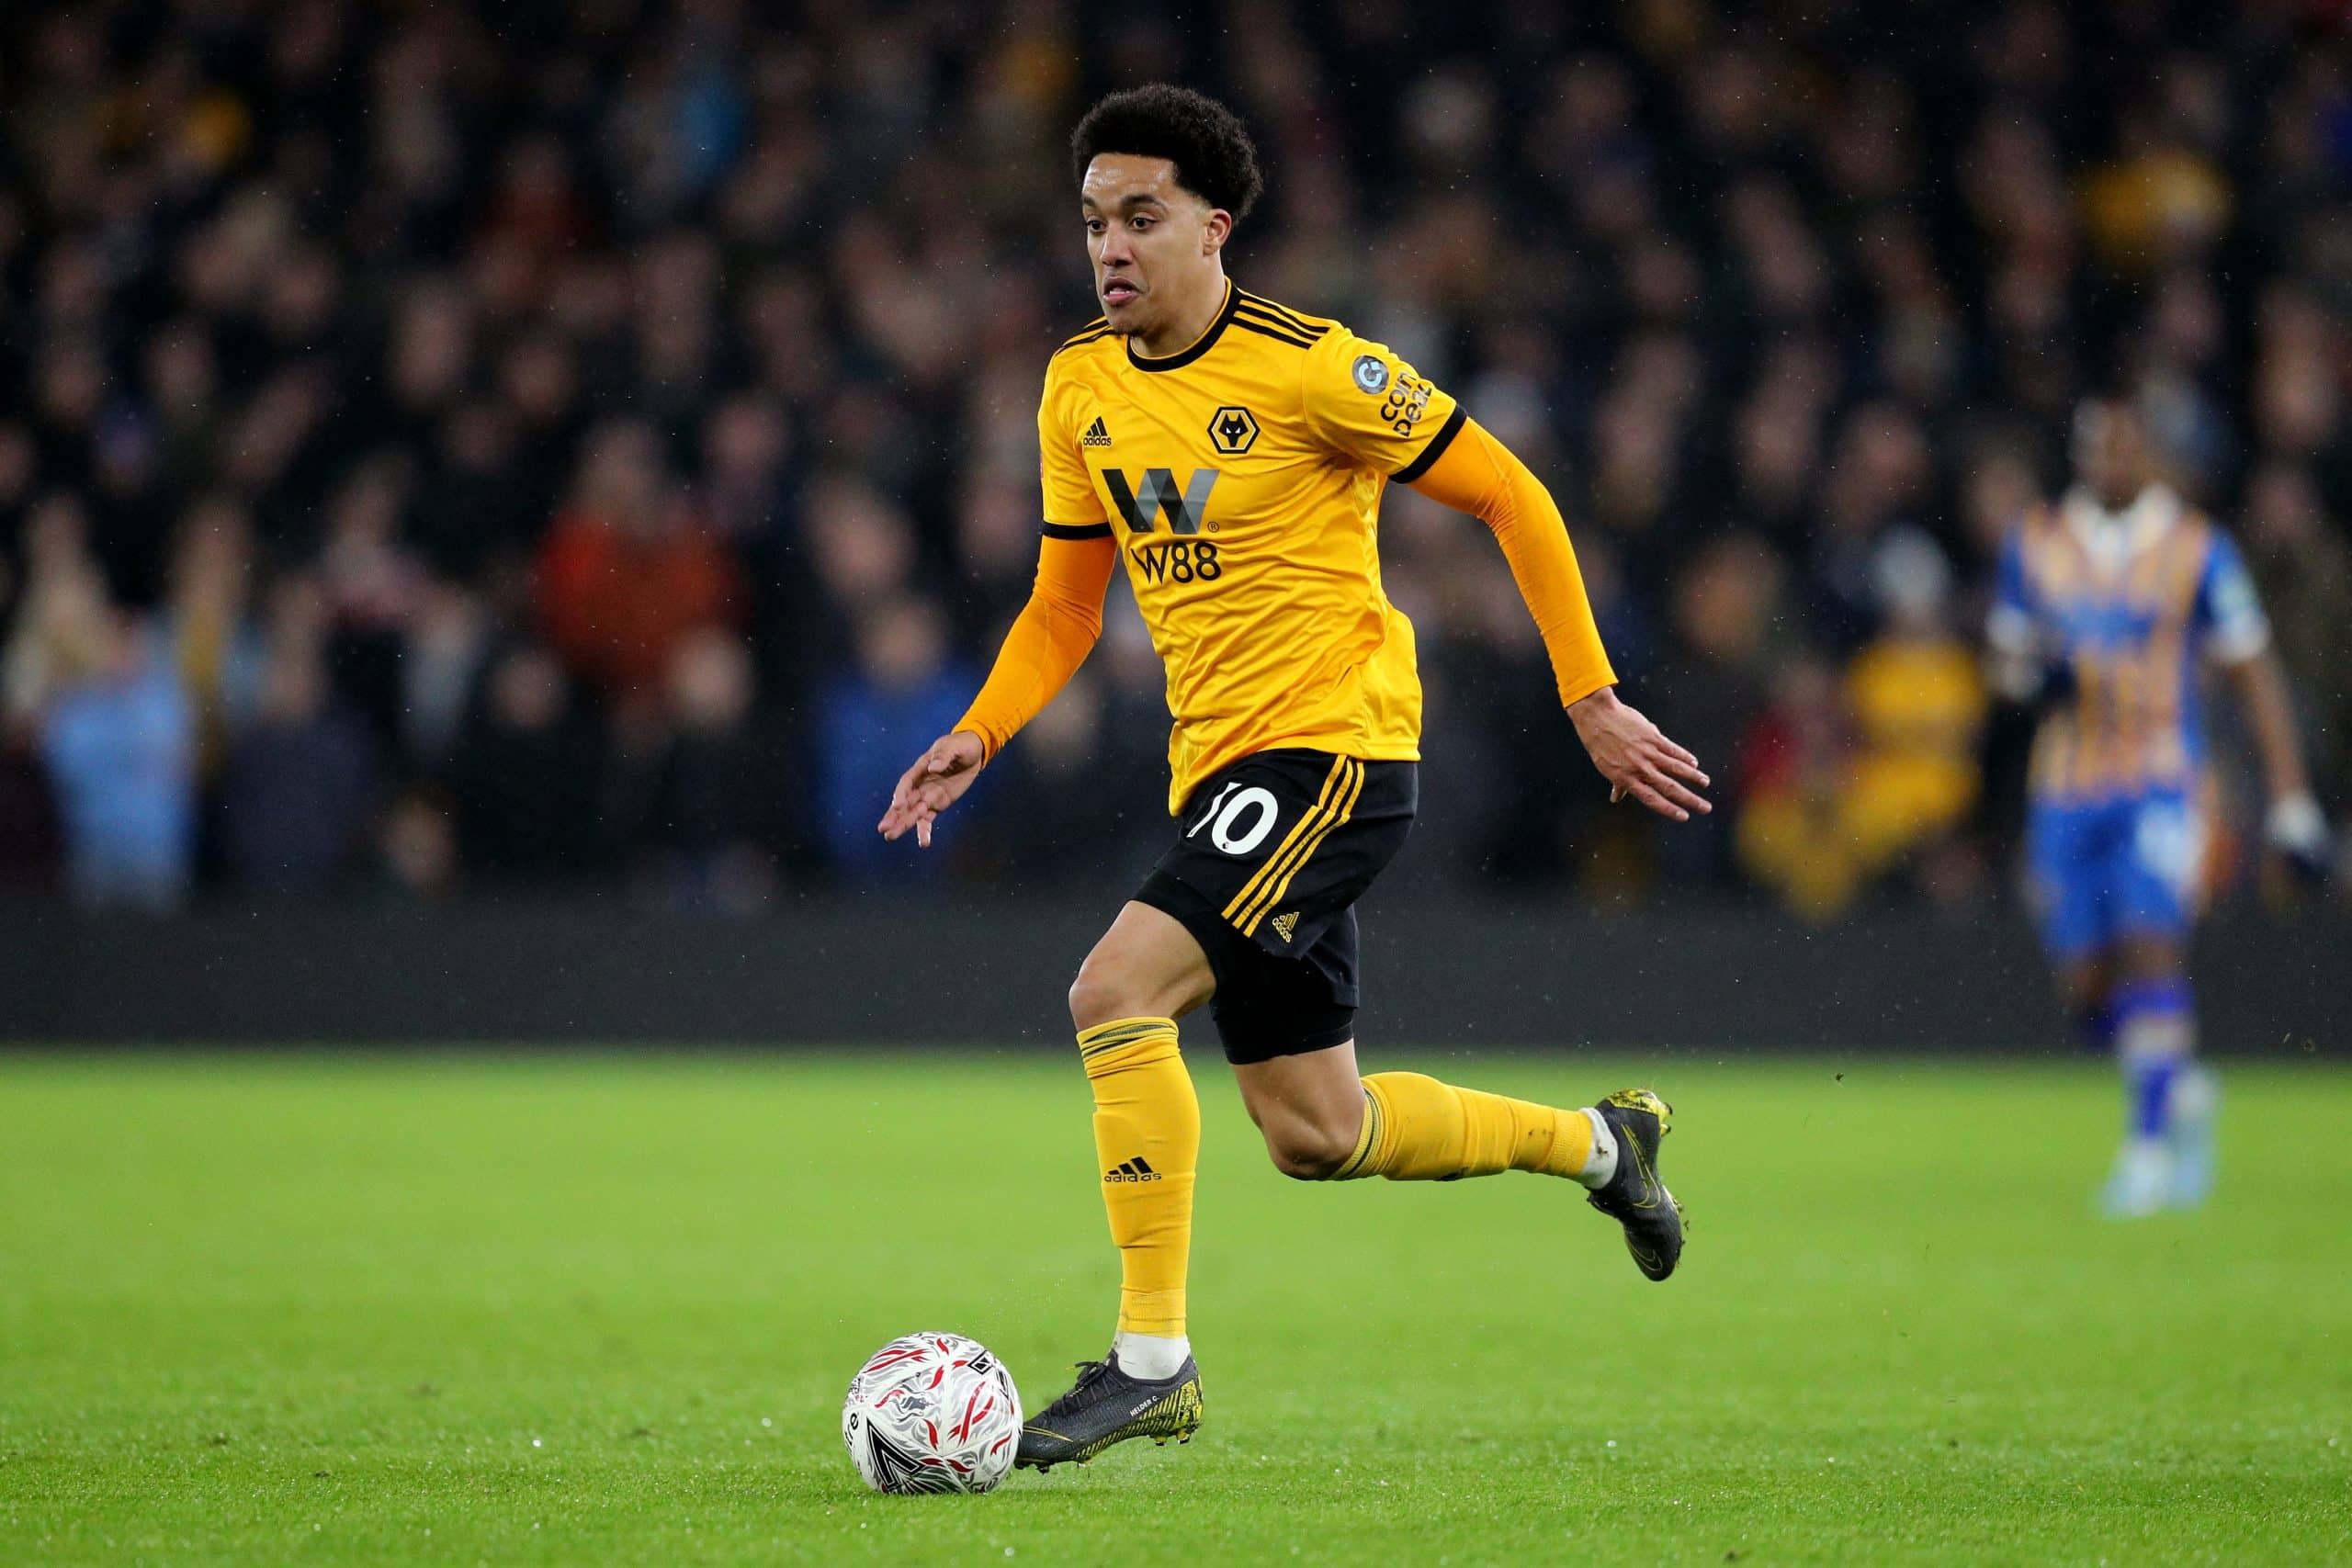 Wolves vs Manchester United betting tips: Preview, predictions & odds